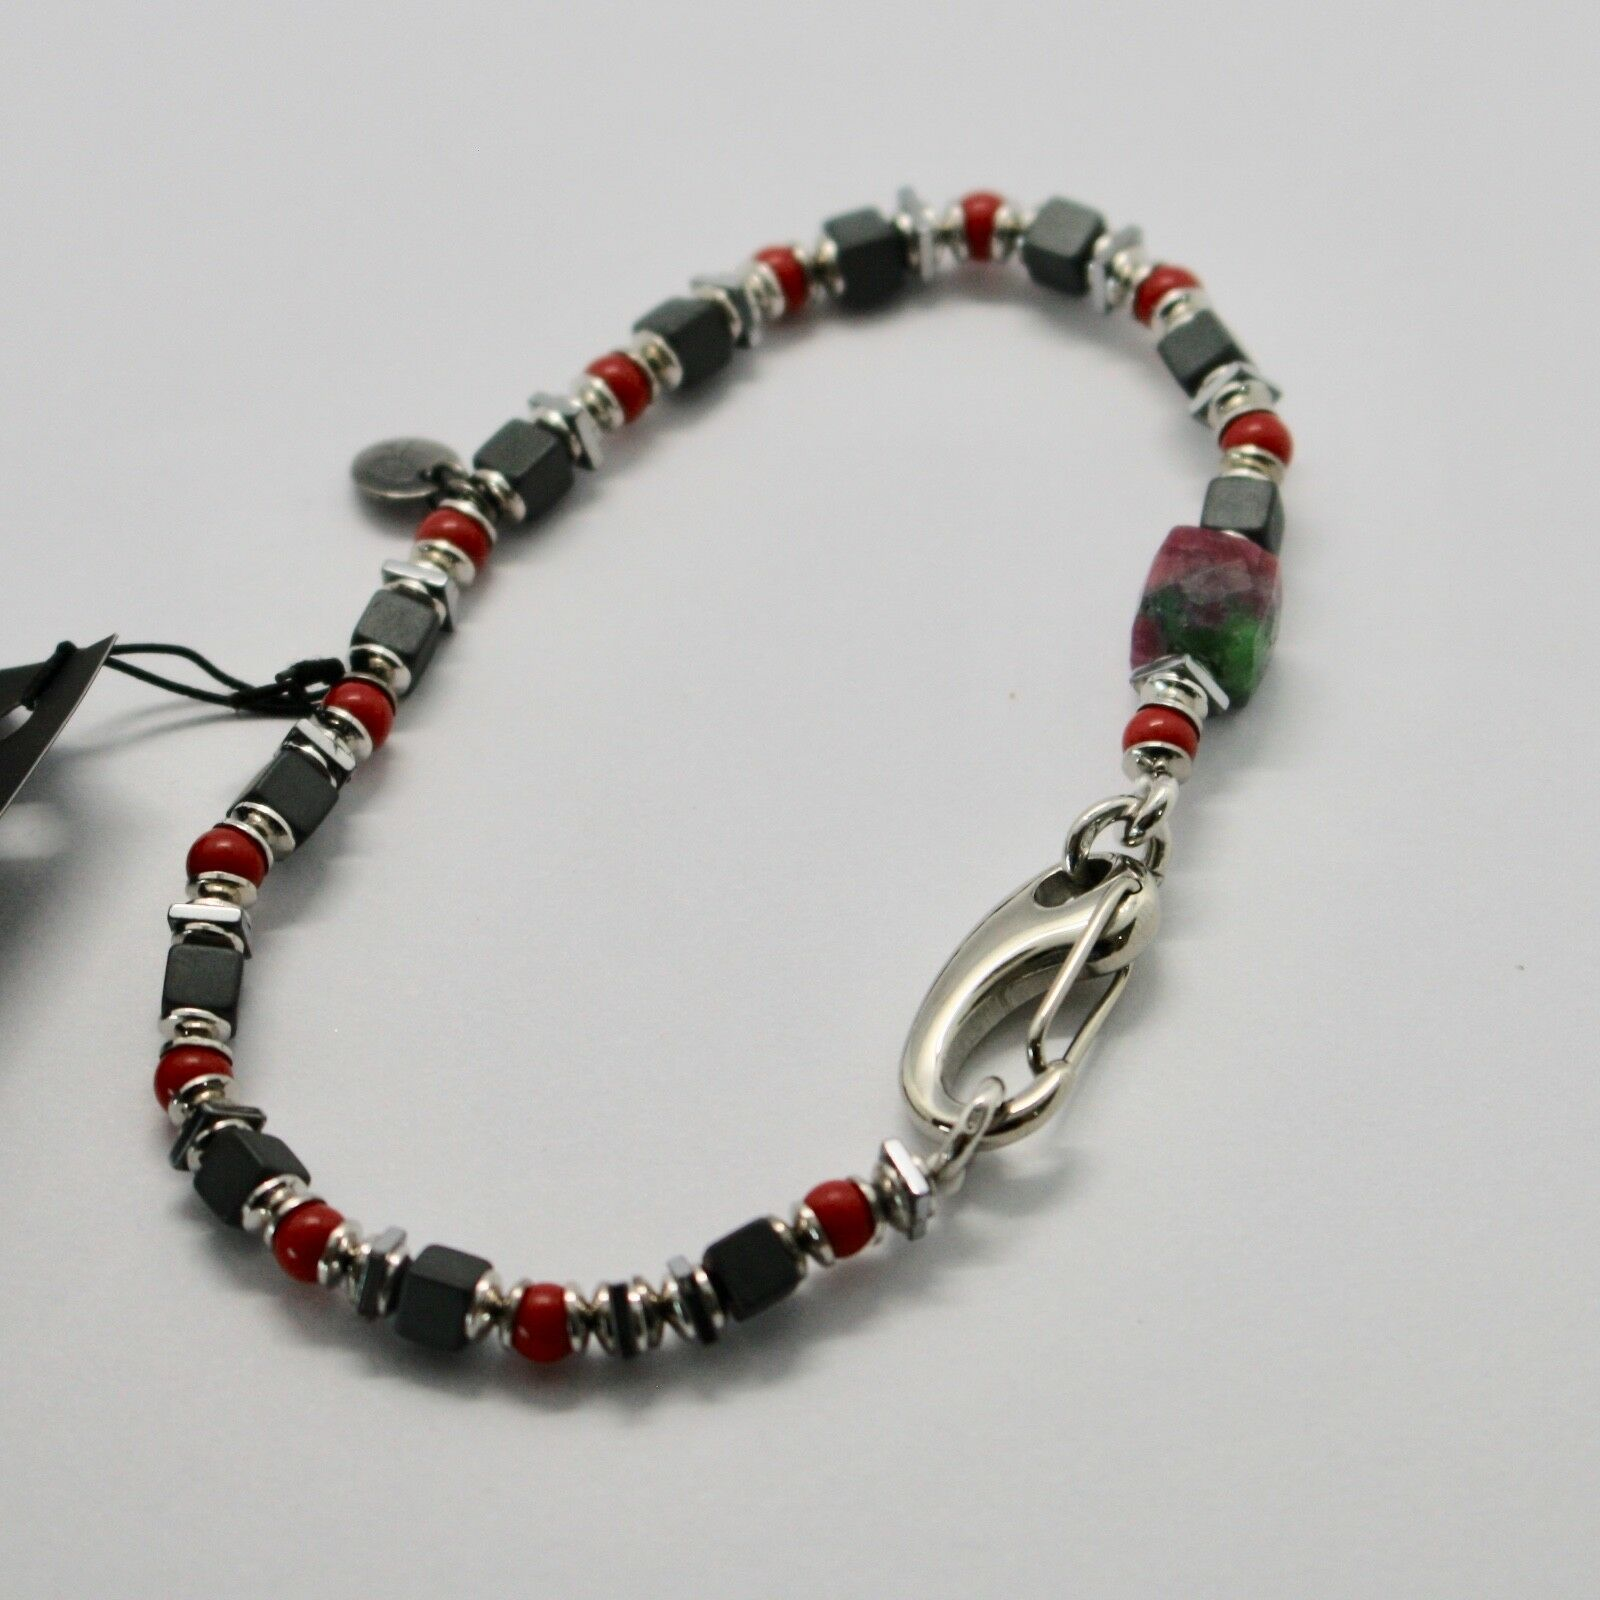 Silver 925 Bracelet Ruby Zoisite Coral Bpan-13 Made in Italy by Maschia image 5